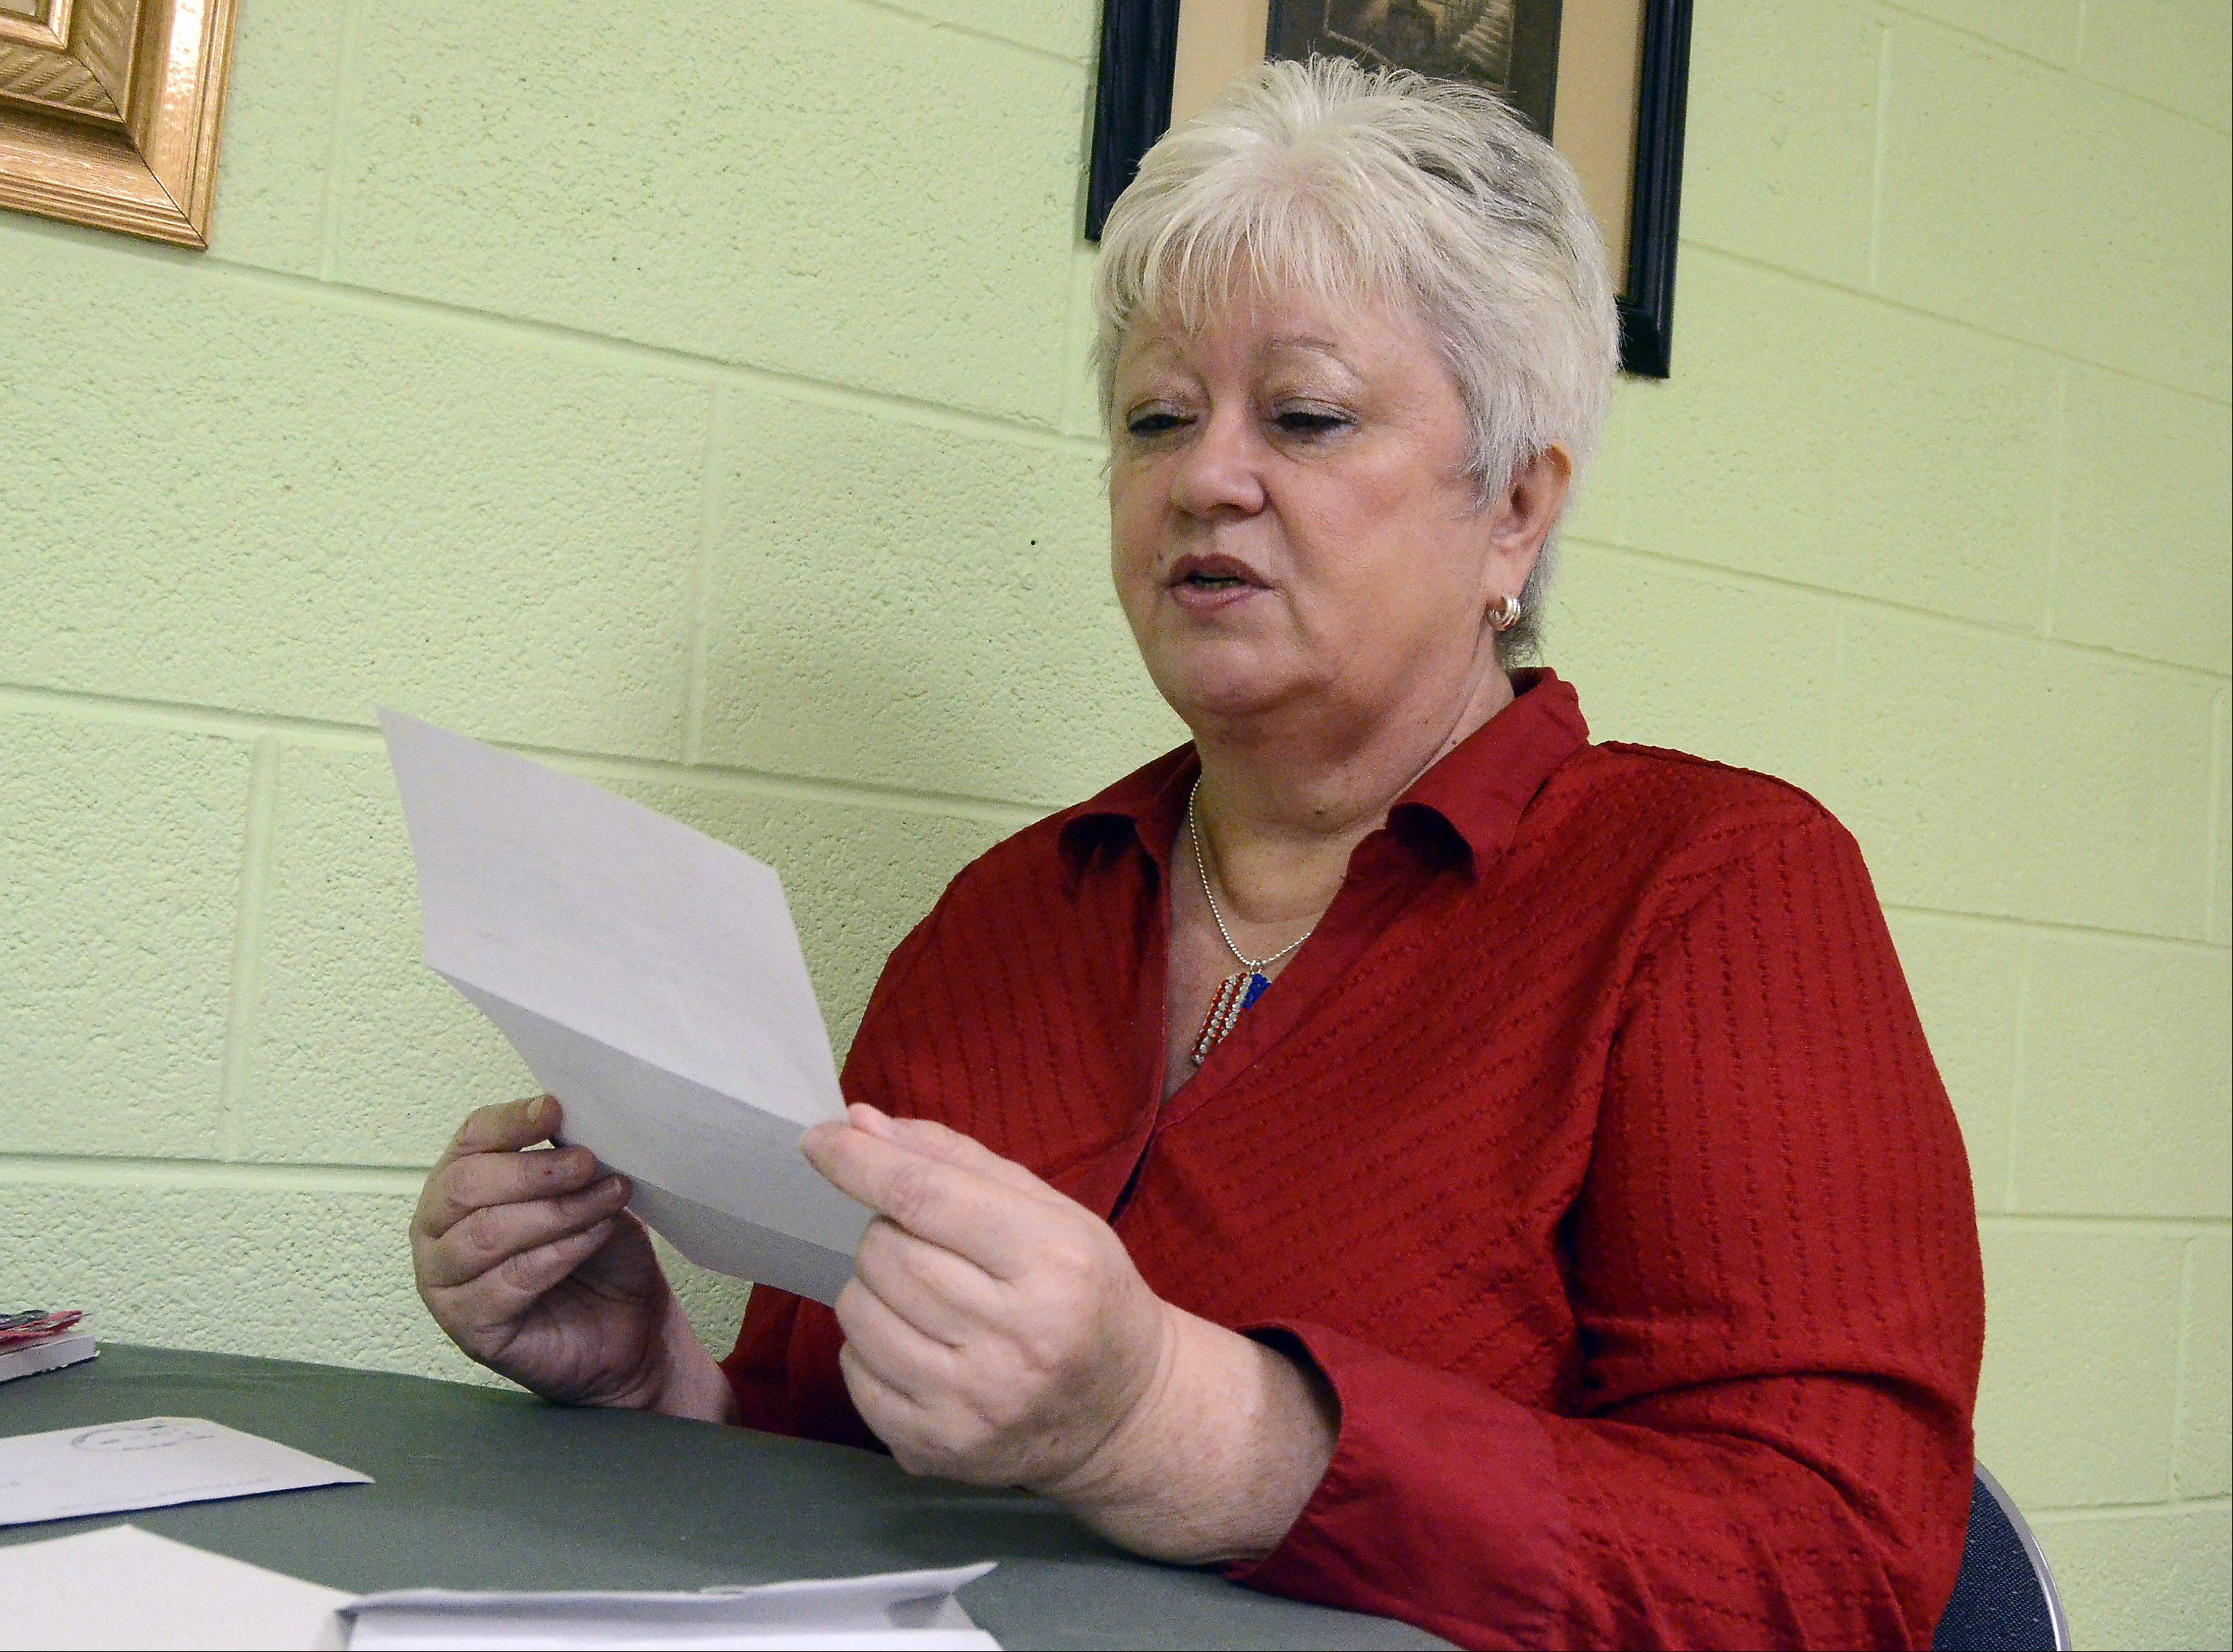 Cheryl Talaczynski of Arlington Heights reads a response from Sgt. Lorenzo in Afghanistan, who was sent one of her handmade greeting cards last year.